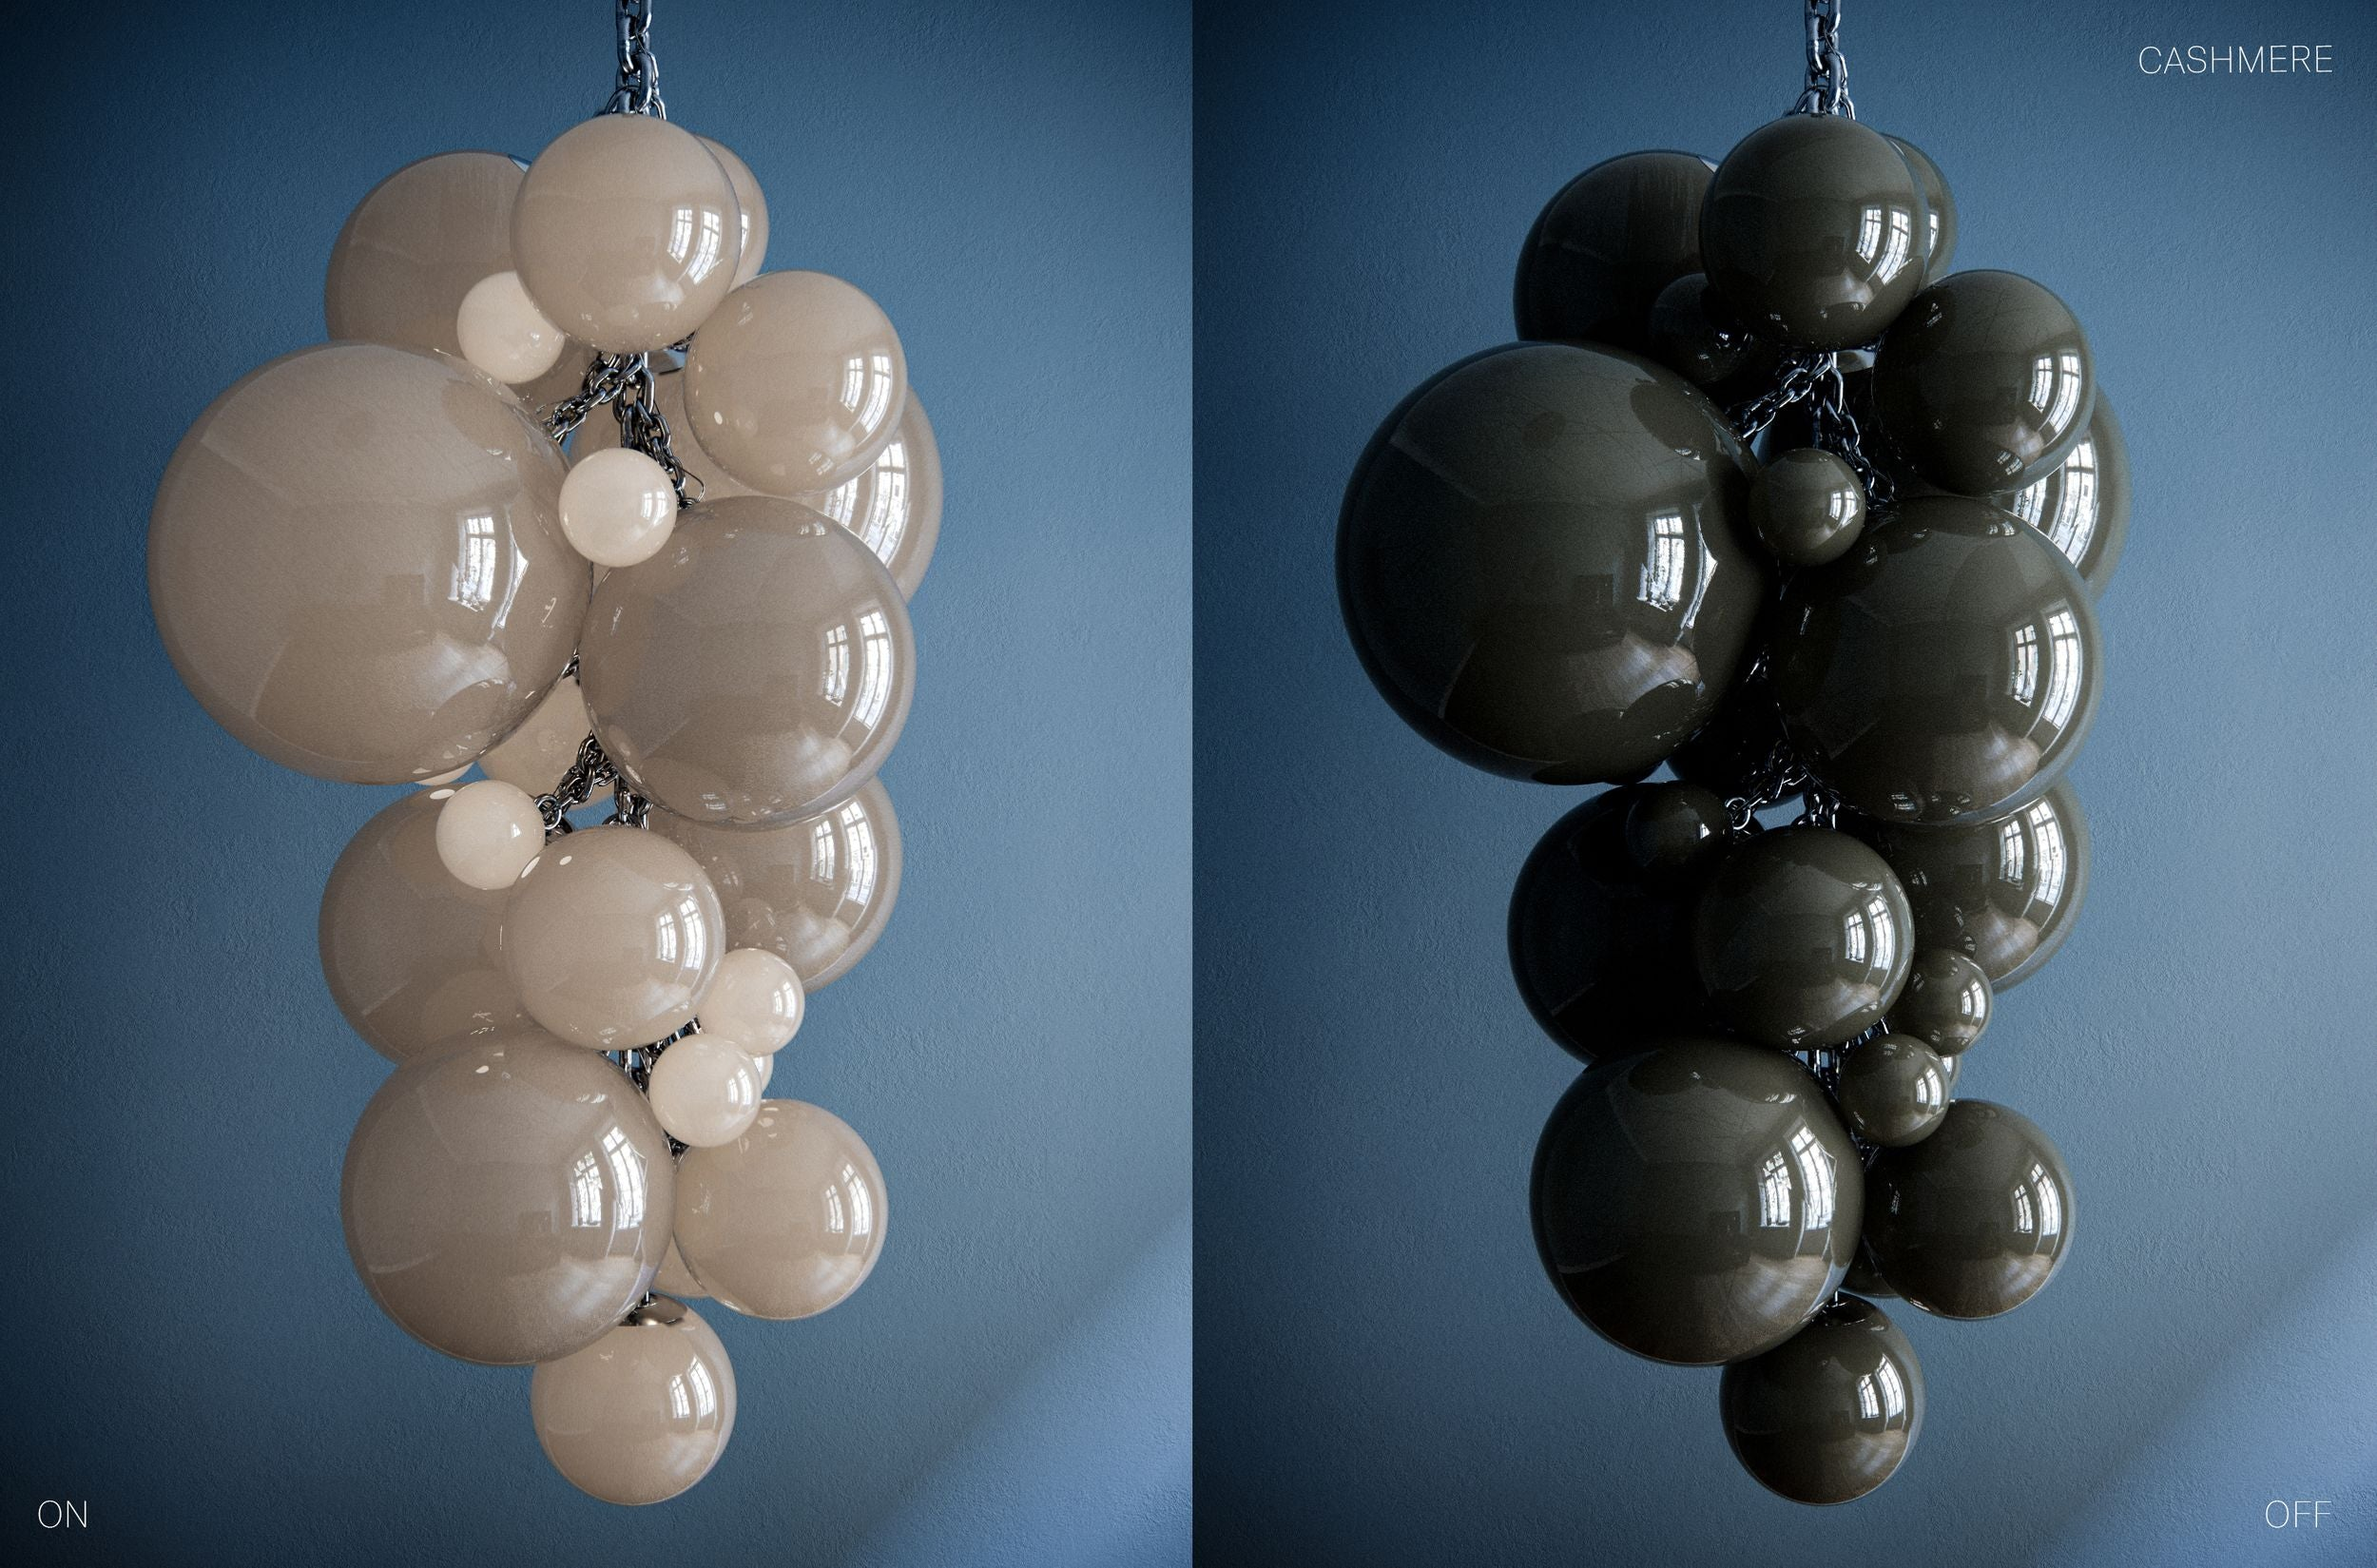 Kuulas Glass Chandelier in Cashmere by Cameron Design House